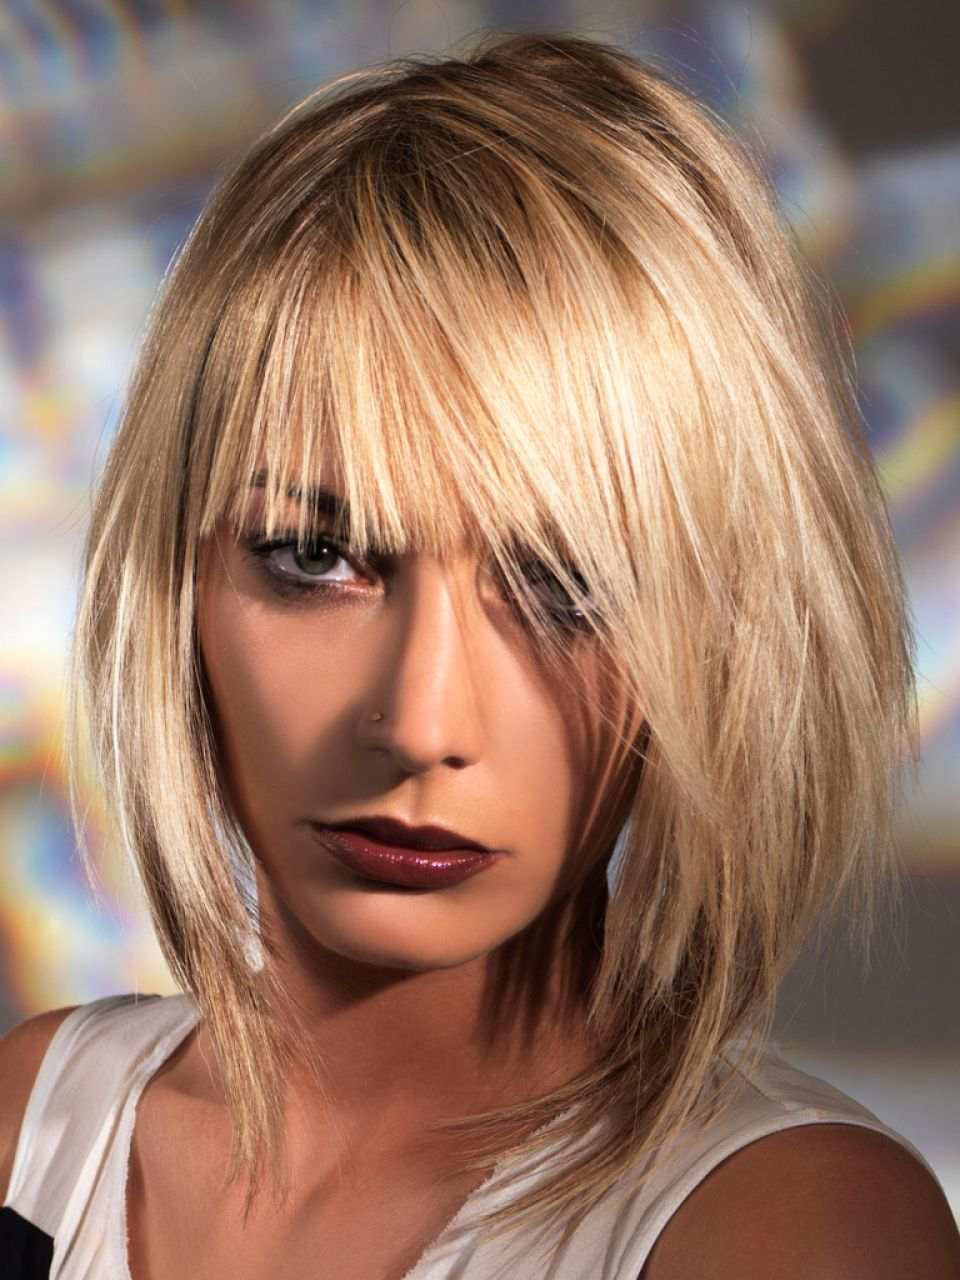 Unsere TOP 20 Blonde Damenfrisuren – Platz 20